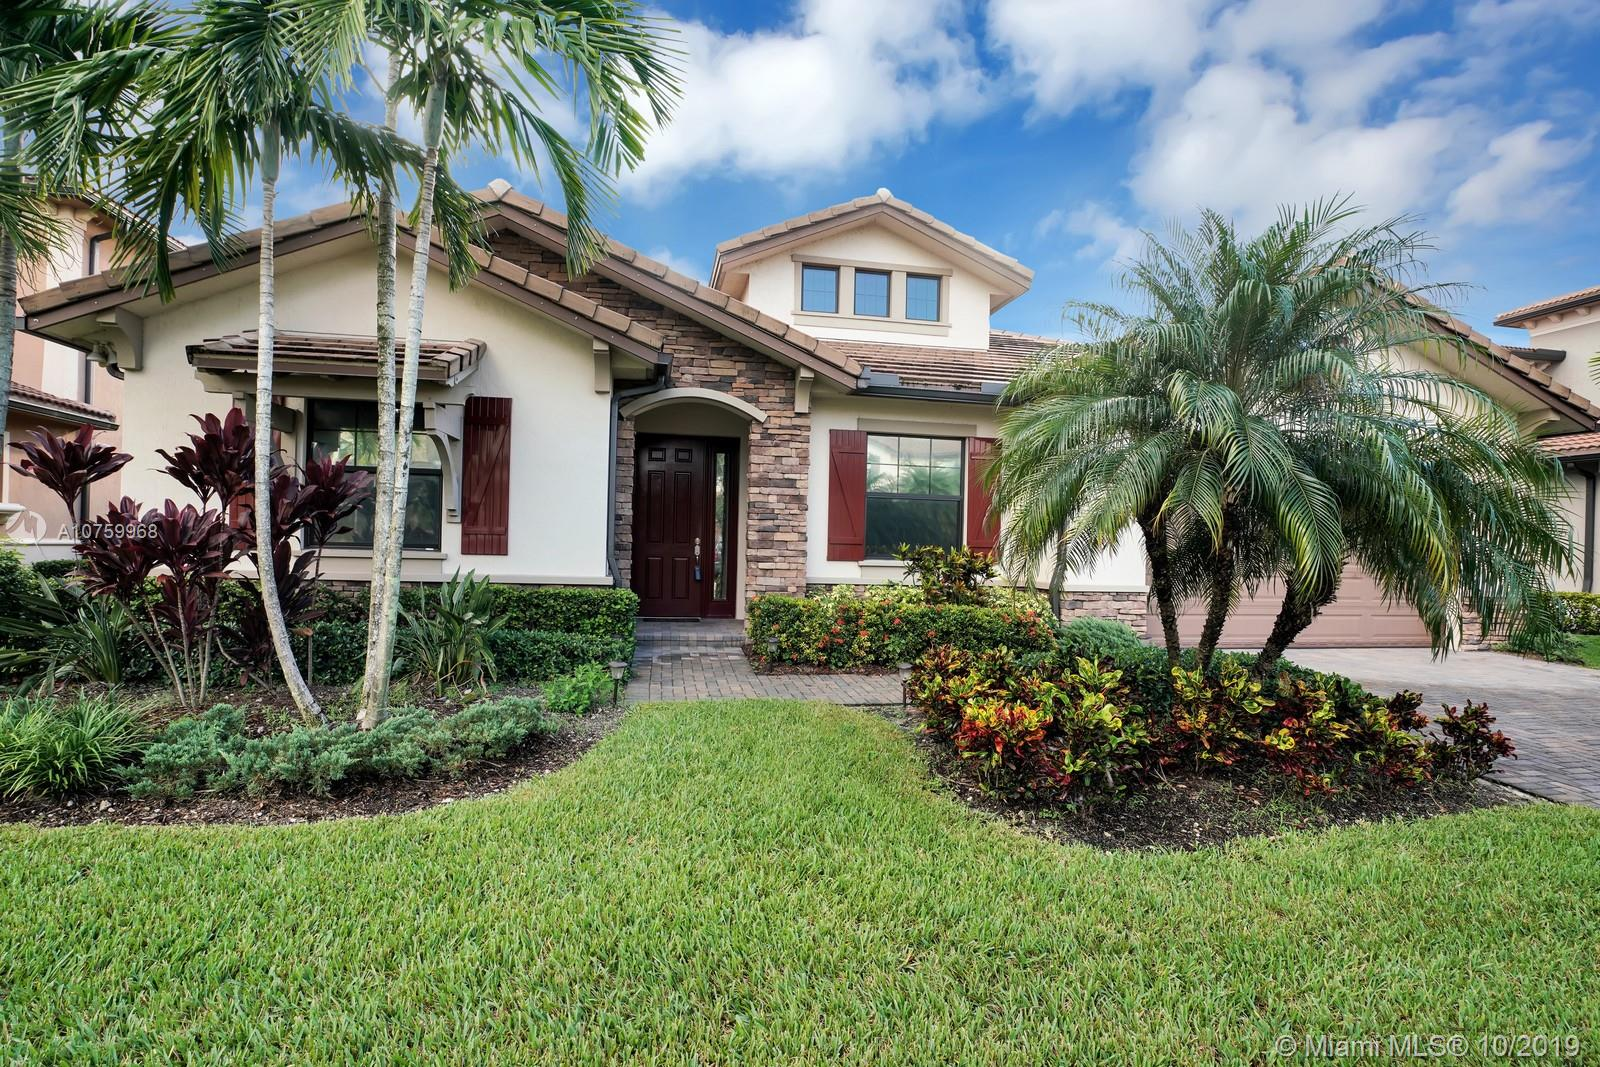 Beautiful One Story 4 Bed (one's now office/den), 2.2 Bath Home on a wide Waterfront Lot with 3 Car Garage. Well Over $100K in Upgrades. Open Kitchen, Center Island with Granite Countertops, Glass Tile Backsplash, SS Appliances. Tray Ceilings, High Impact Glass throughout, Plantation Shutters, Built in Closets, Crown Molding. Laundry Room. Screened Patio.Fully Fenced Backyard, Lawn Care Included. Enjoy living at WATERCREST, a Guard Gated  Community that offers Resort Style Amenities. A- Rated Schools.+++REALTORS, please read broker remarks+++